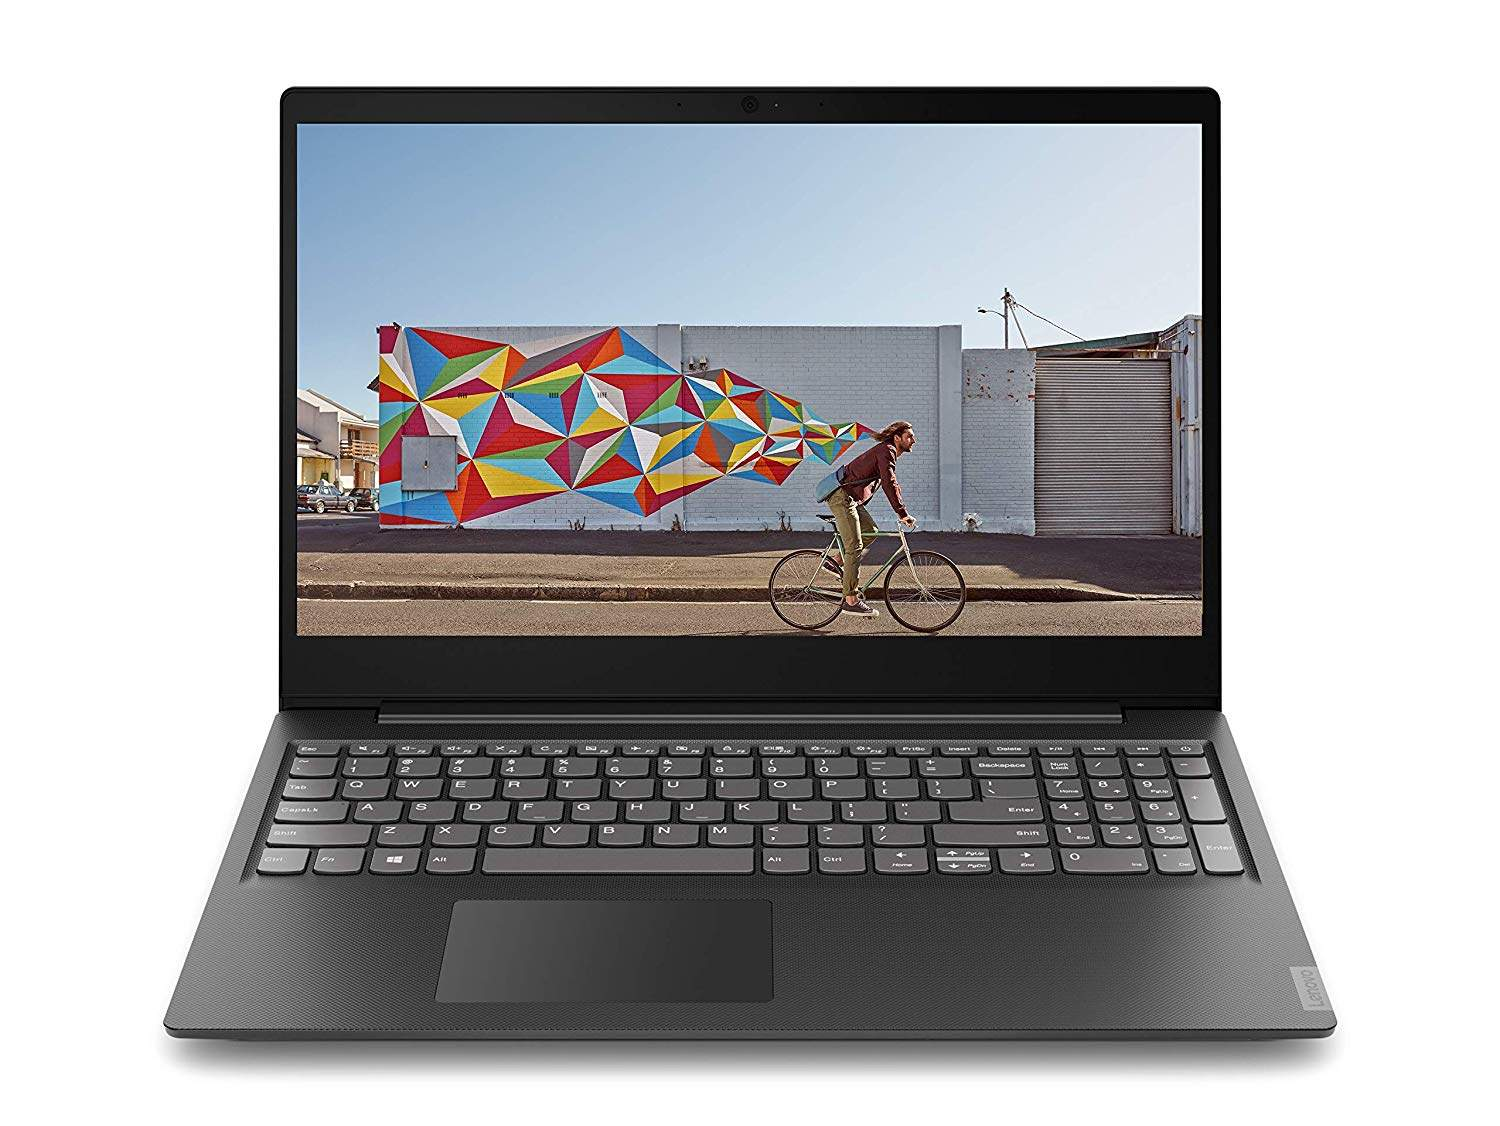 Buy Lenovo Ideapad S145 Intel Core I5 8th Gen 15 6 Fhd Thin And Light Laptop 8gb Ram 1tb Hdd Dos 2gb Nvidia Mx 110 Graphics Black 1 85kg 81mv009gin Features Price